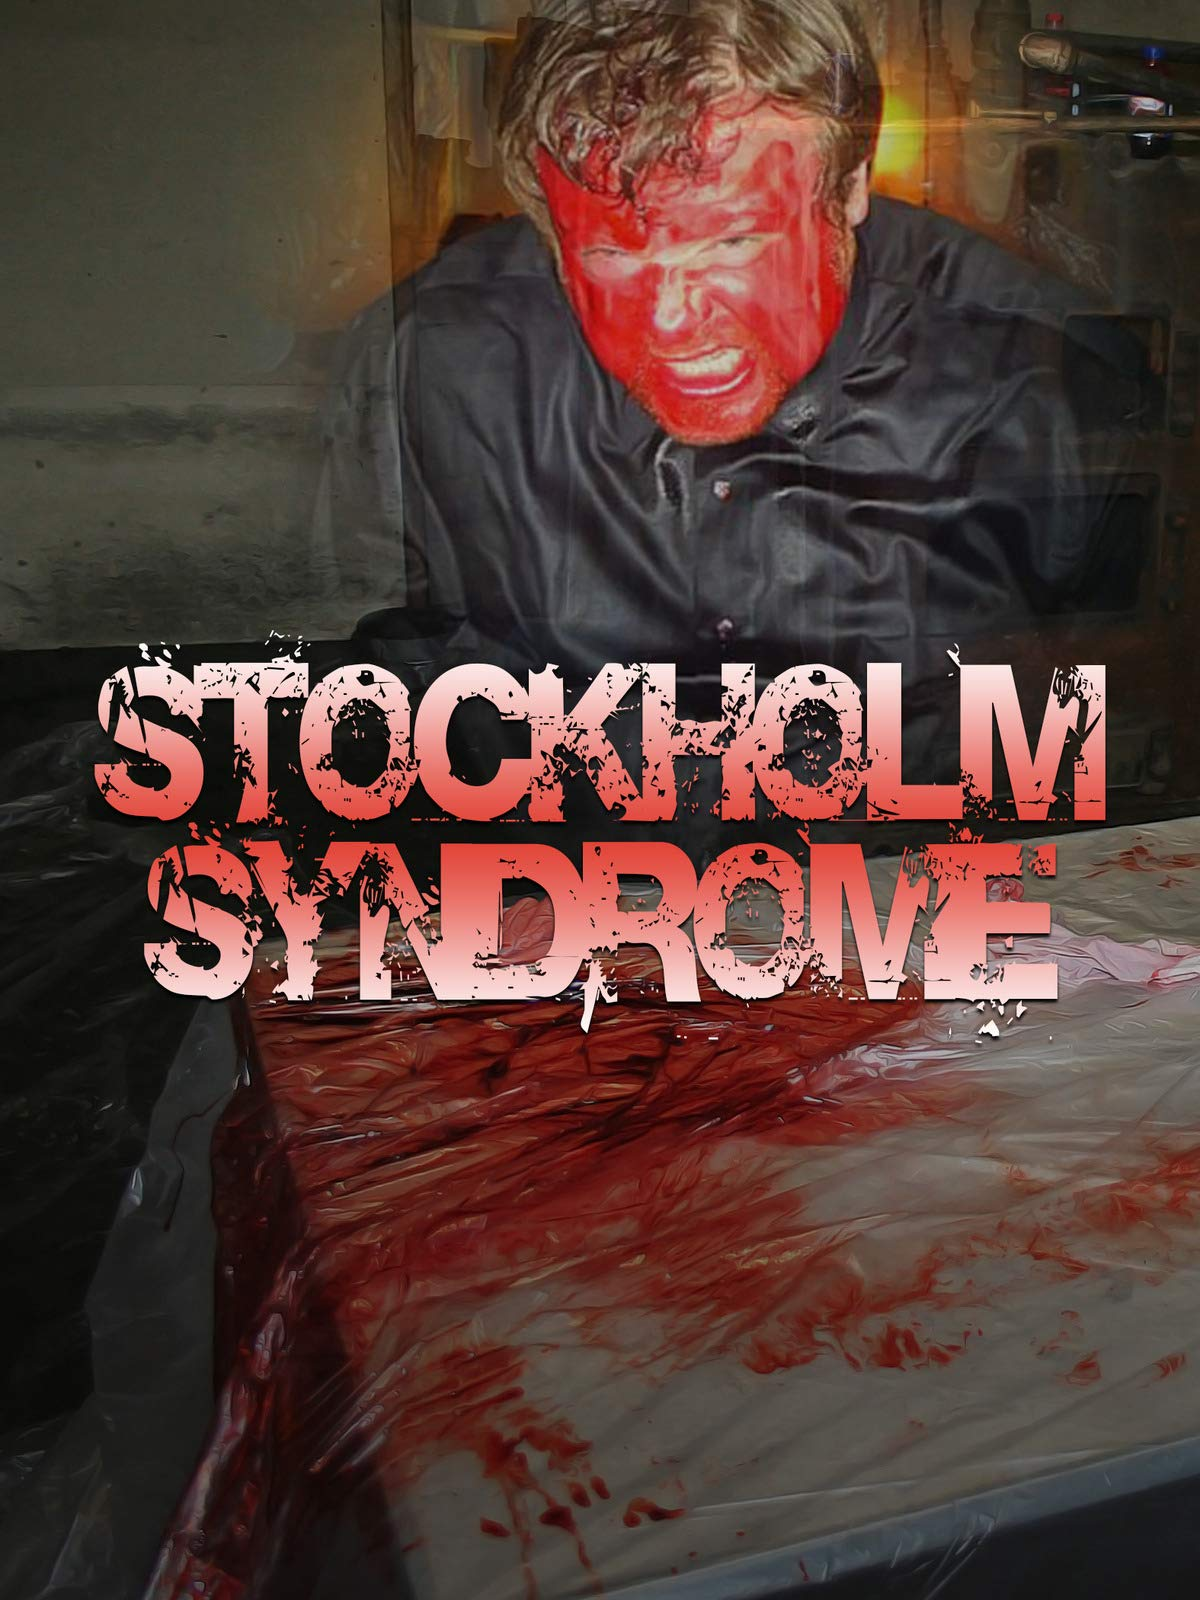 Stockholm Syndrome - Director's Cut on Amazon Prime Video UK